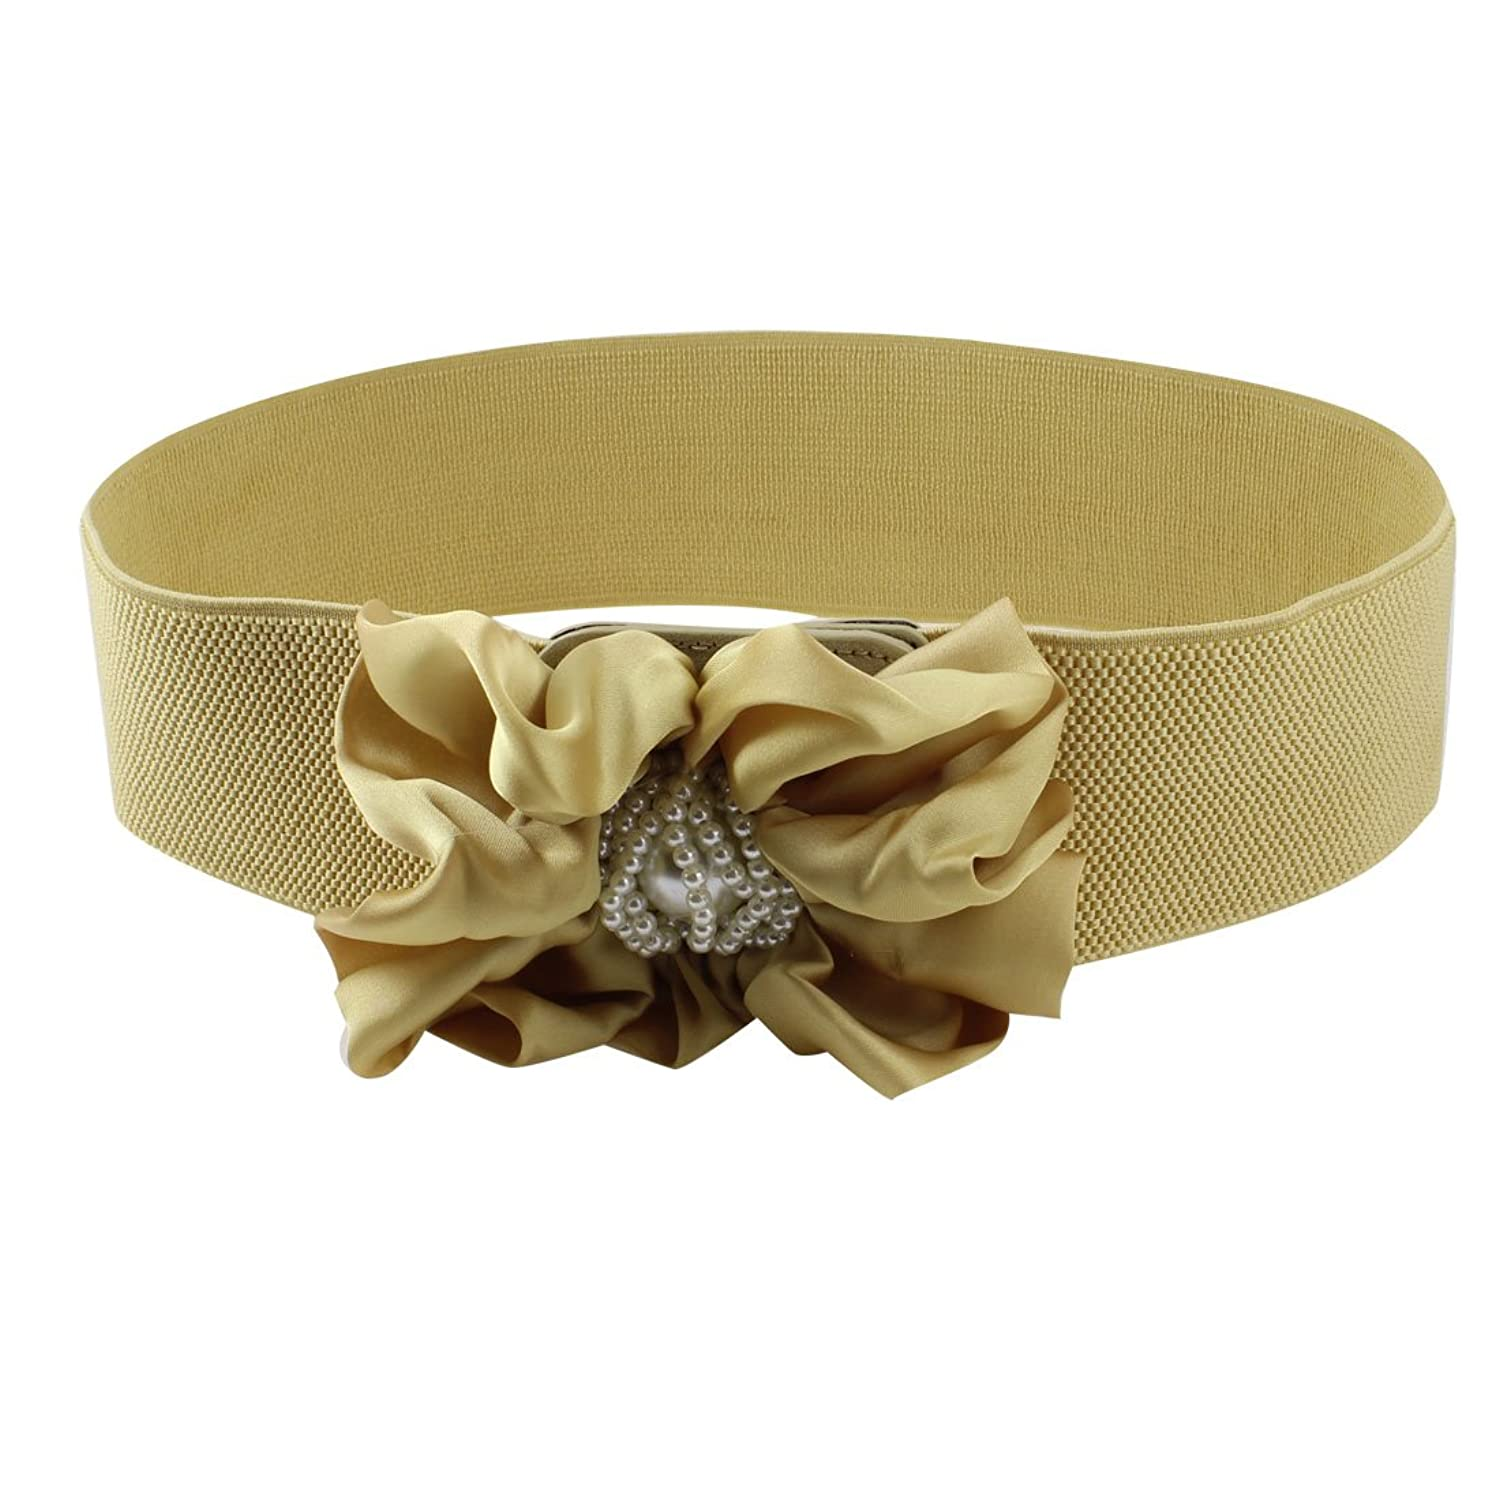 Champagne Color Floral Decor Press Stud Button Closure Cinch Belt